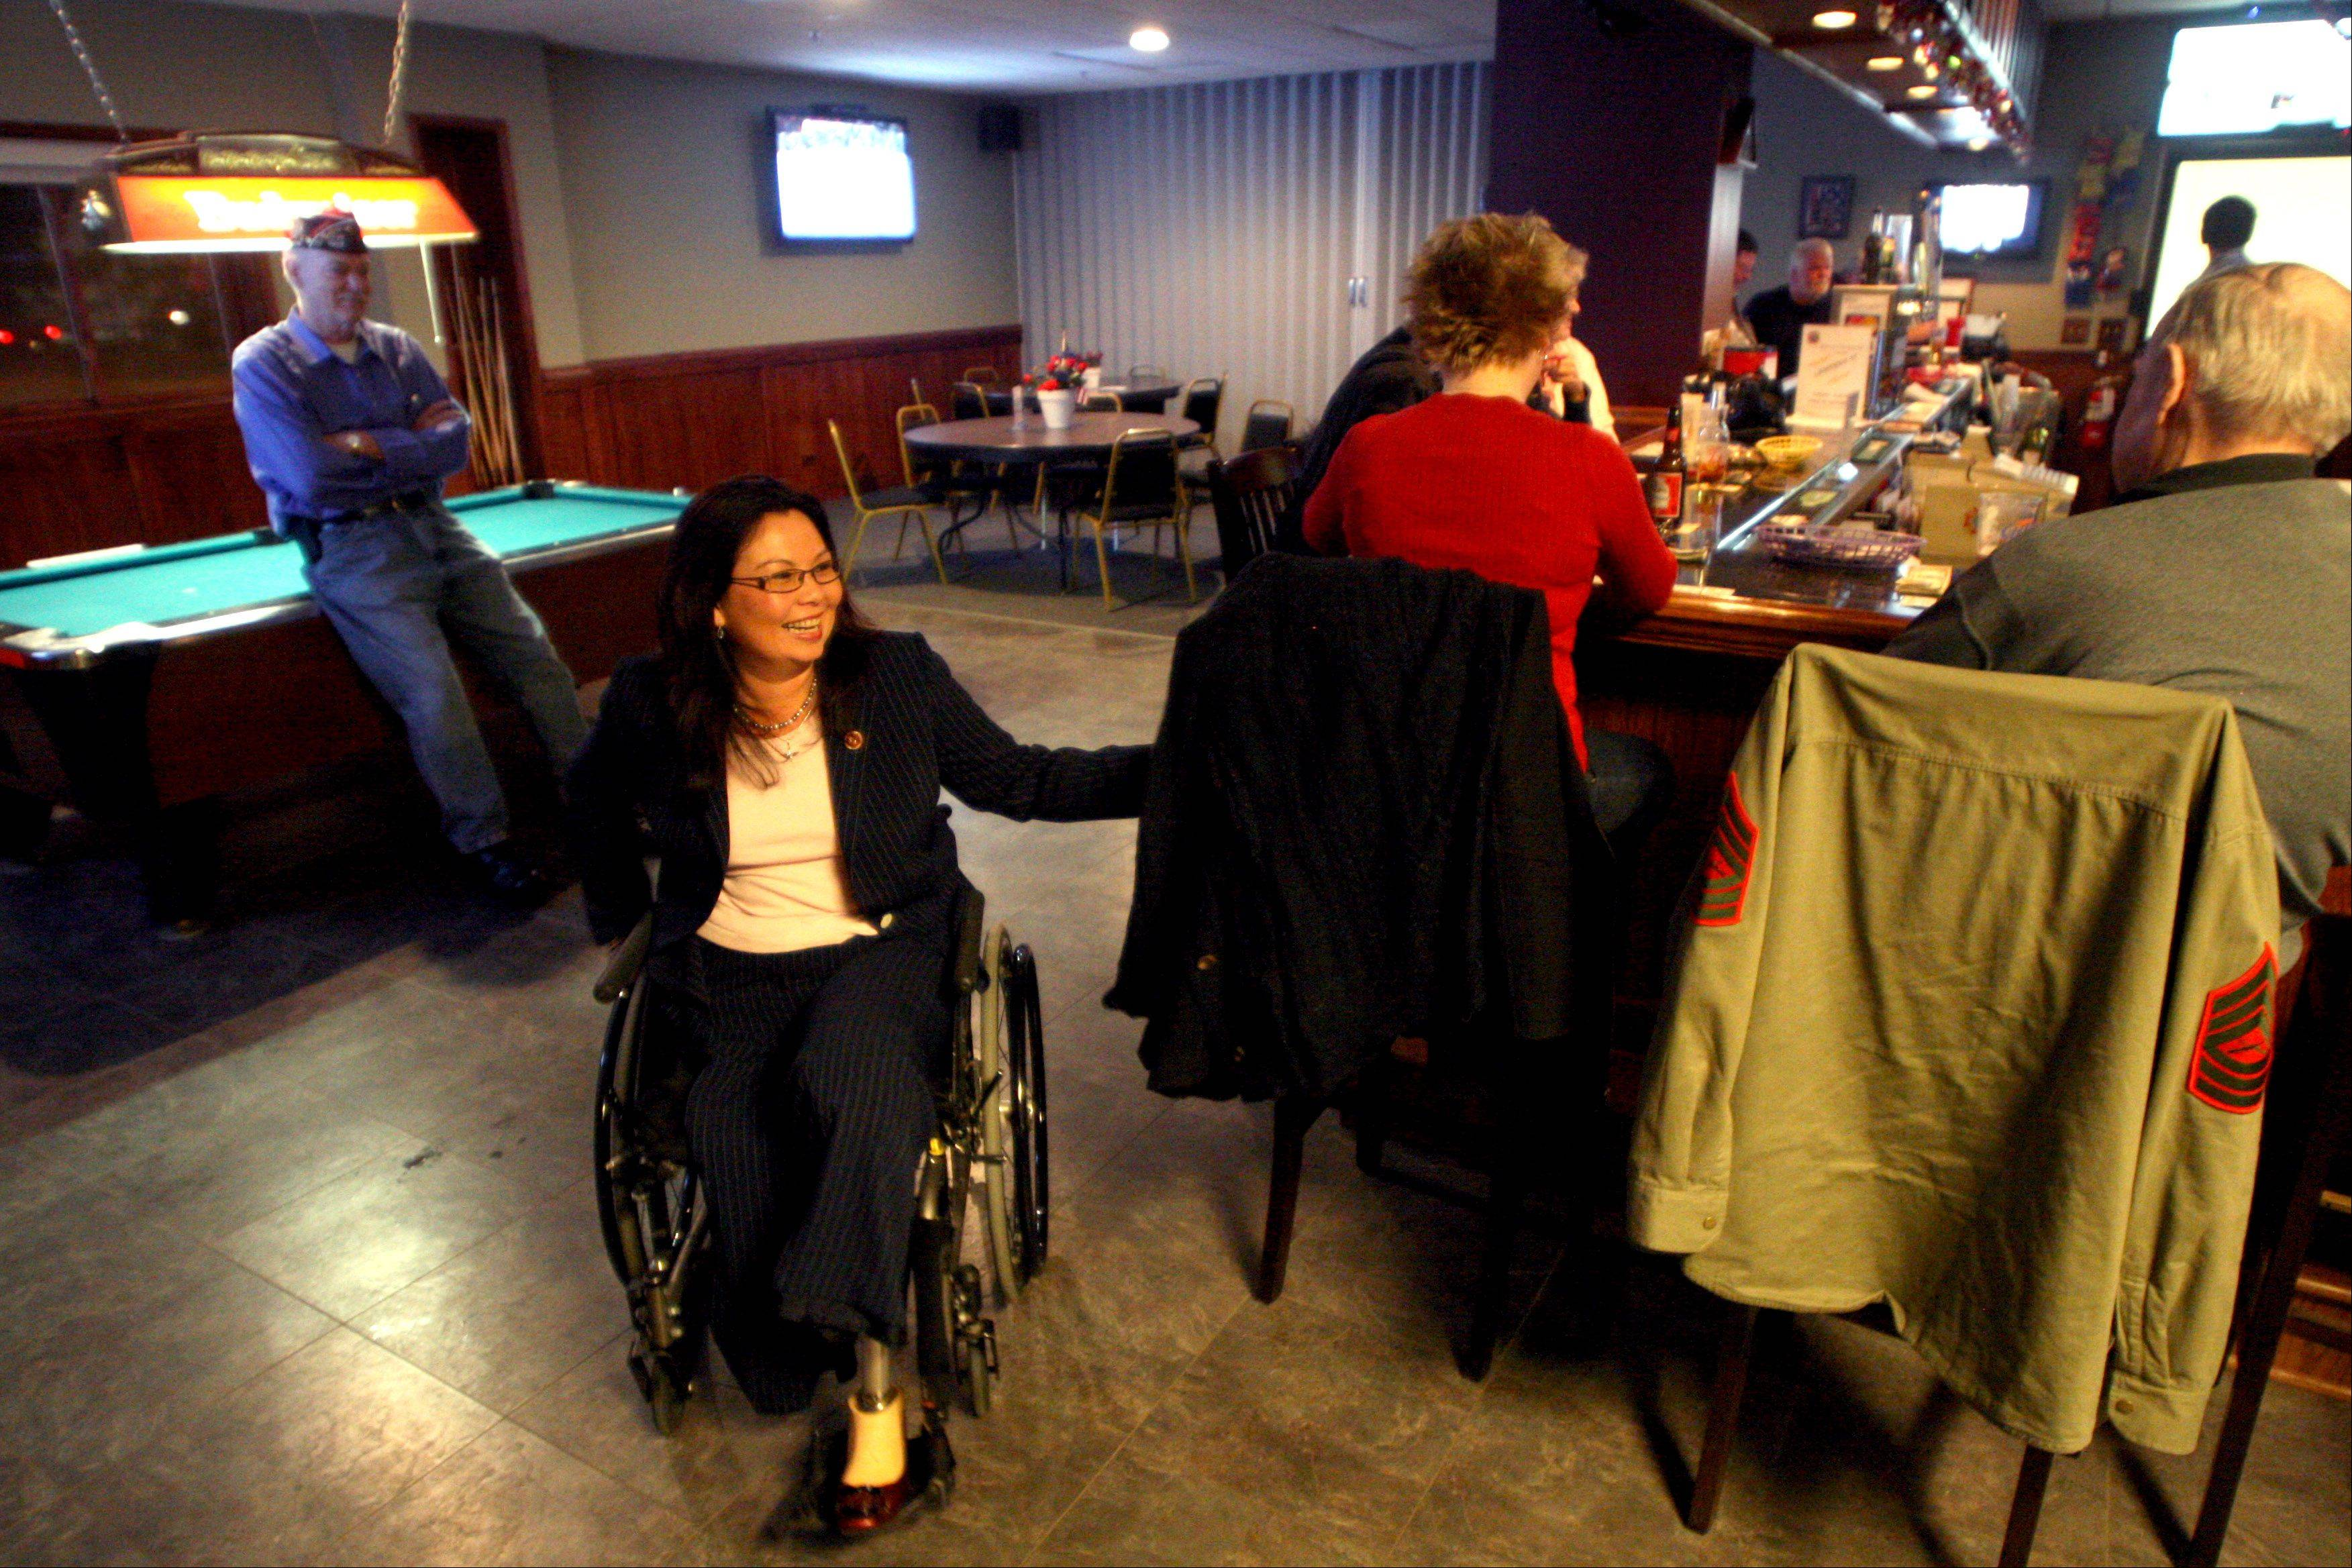 U.S. Rep. Tammy Duckworth visited Elgin VFW Post 1307 on Wednesday night to contribute to efforts to donate supplies for wounded soldiers overseas.